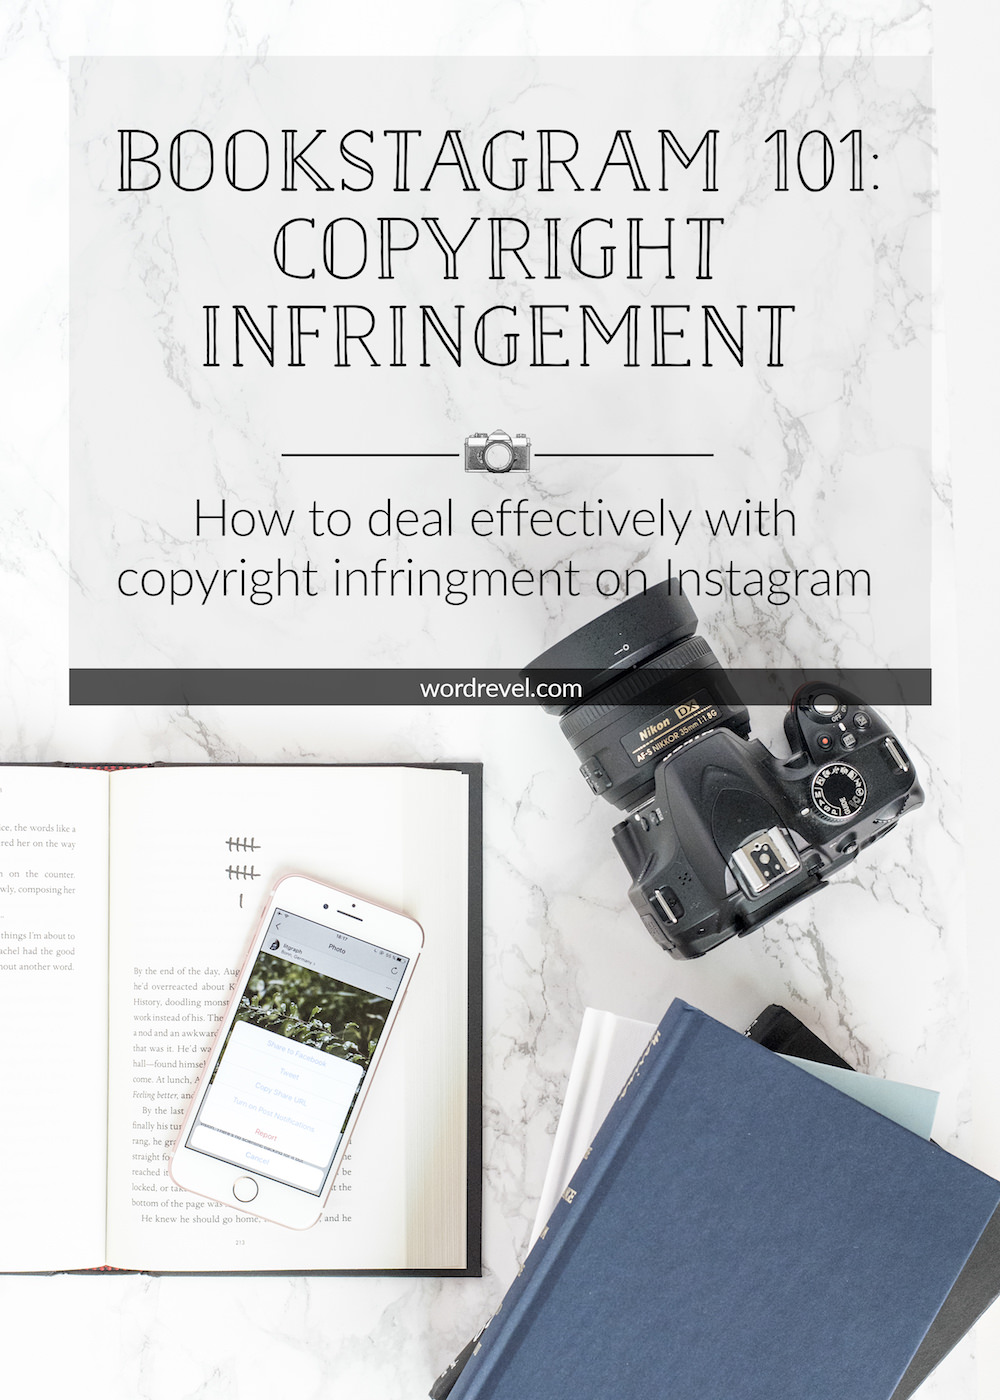 Bookstagram 101 - Dealing with Copyright Infringement